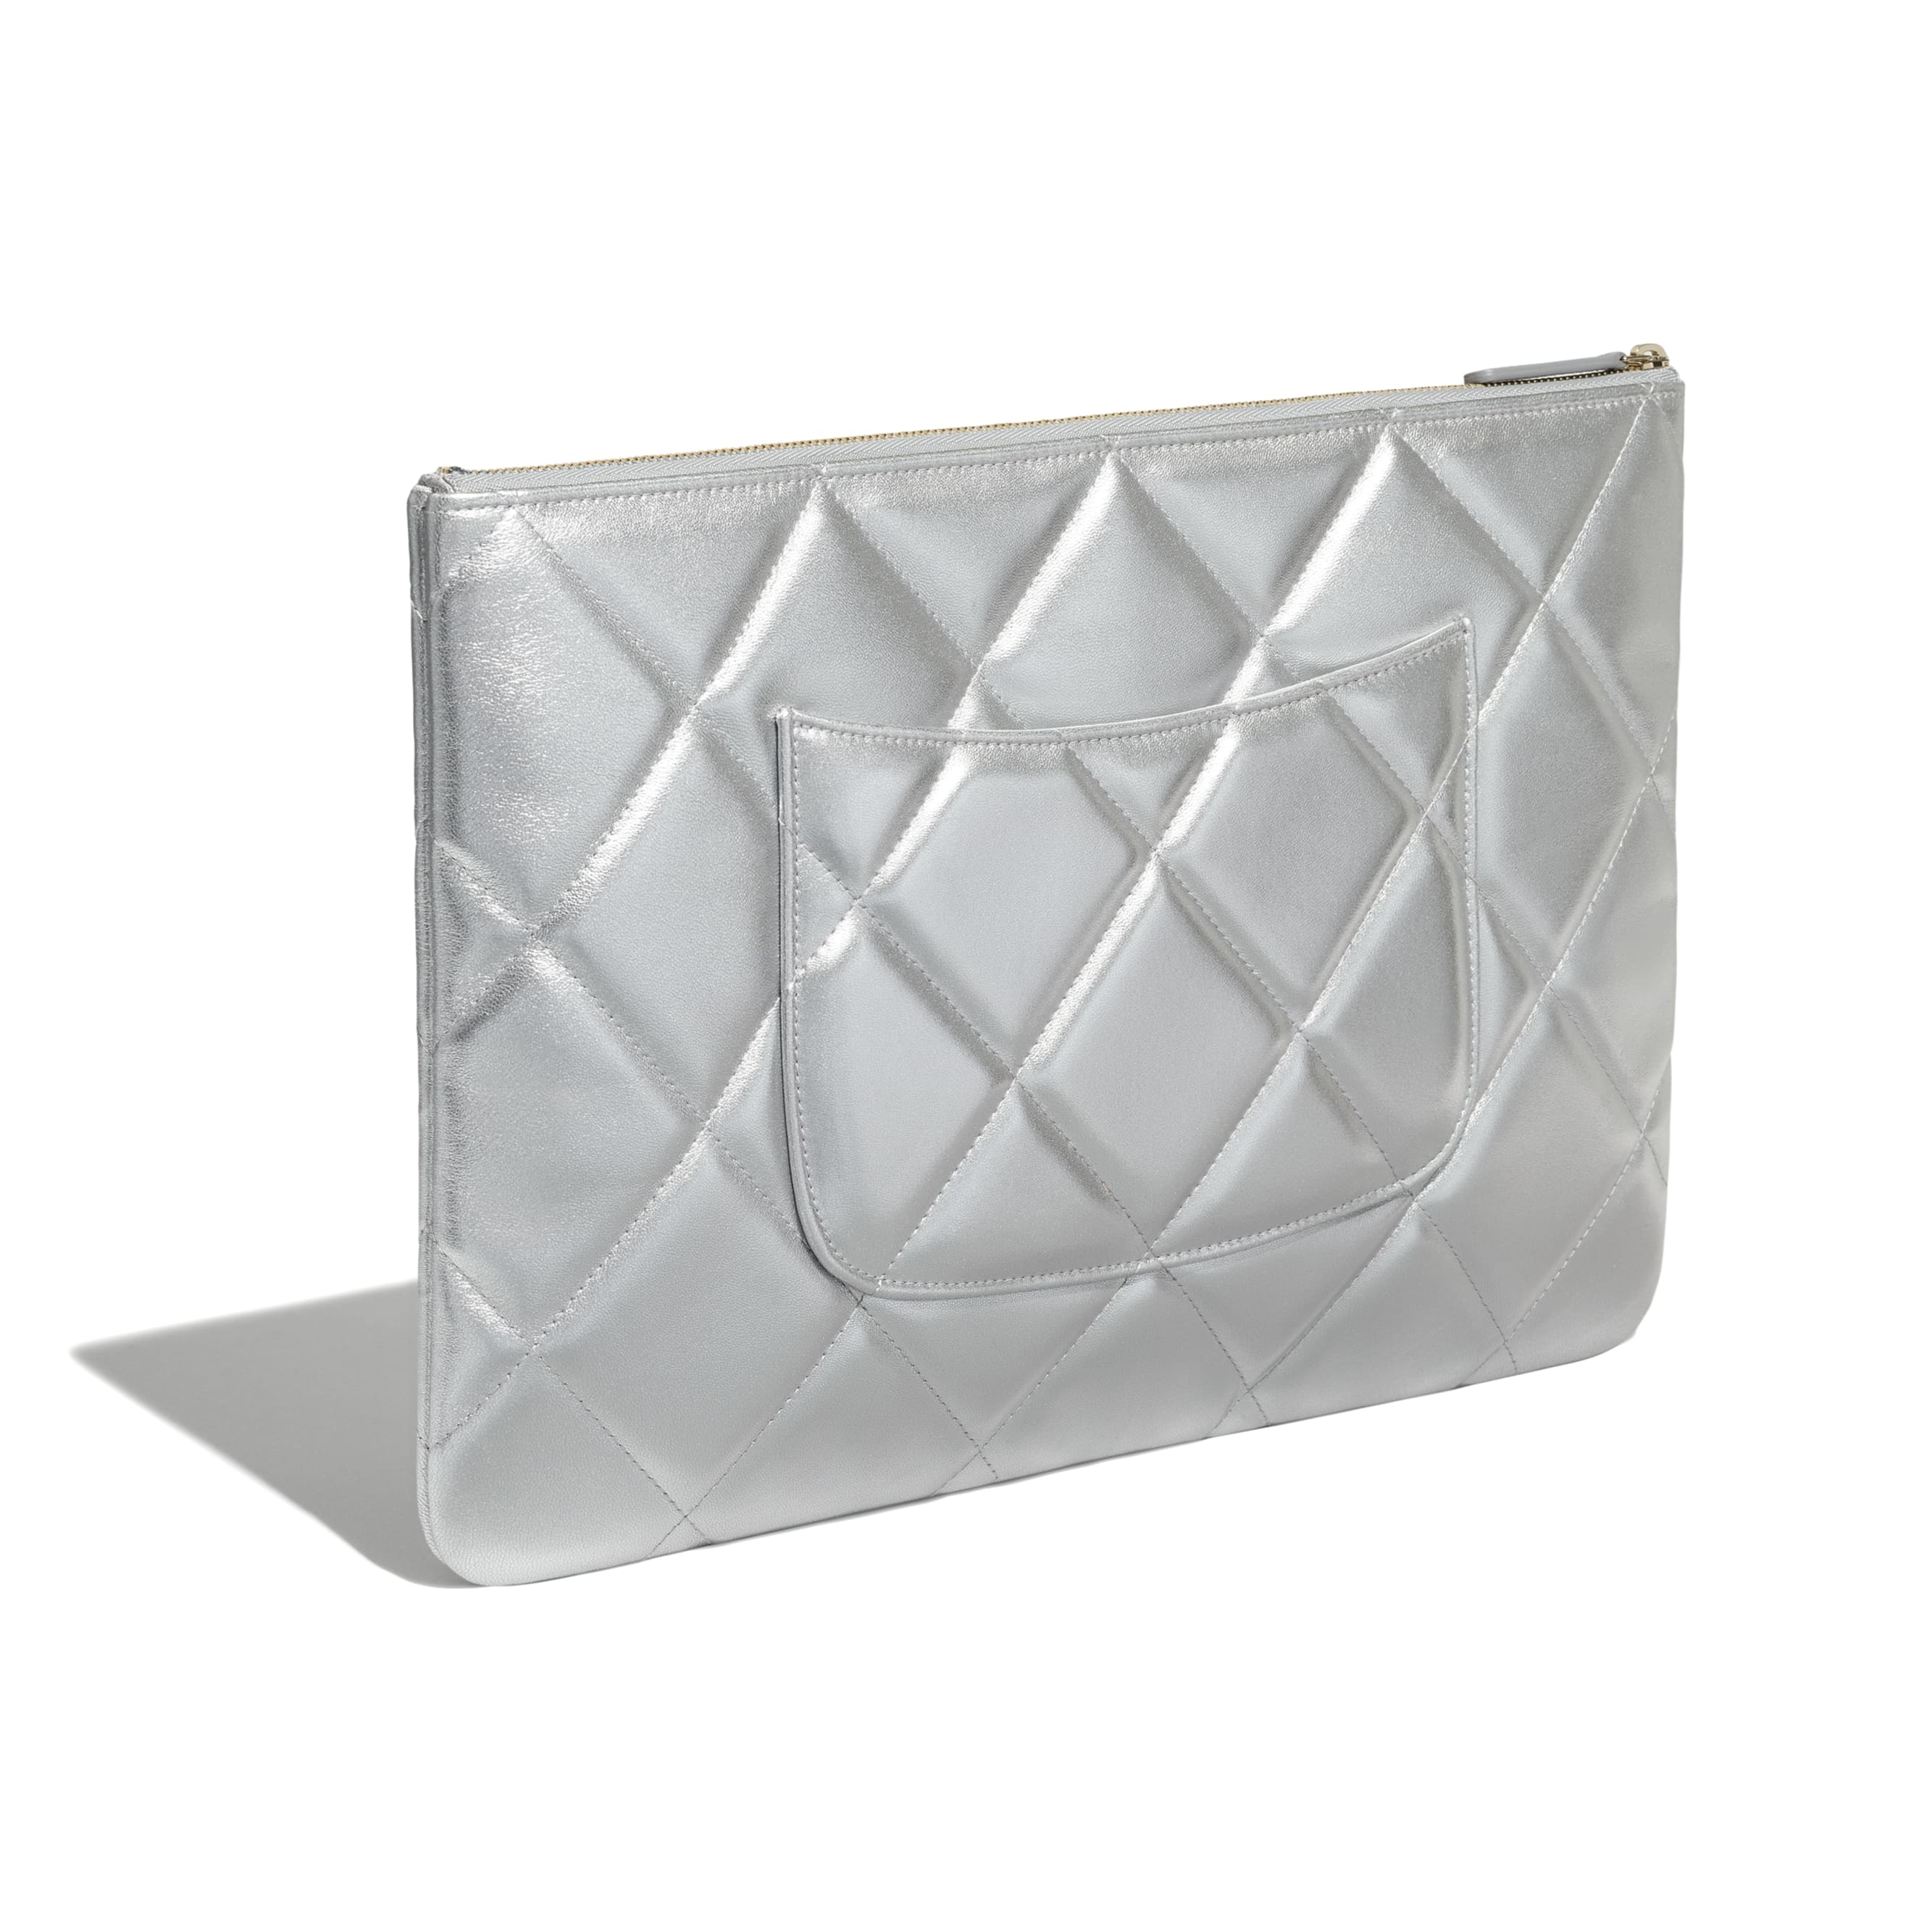 CHANEL 19 Large Pouch - Silver - Metallic Lambskin, Gold-Tone, Silver-Tone & Ruthenium-Finish Metal - CHANEL - Extra view - see standard sized version